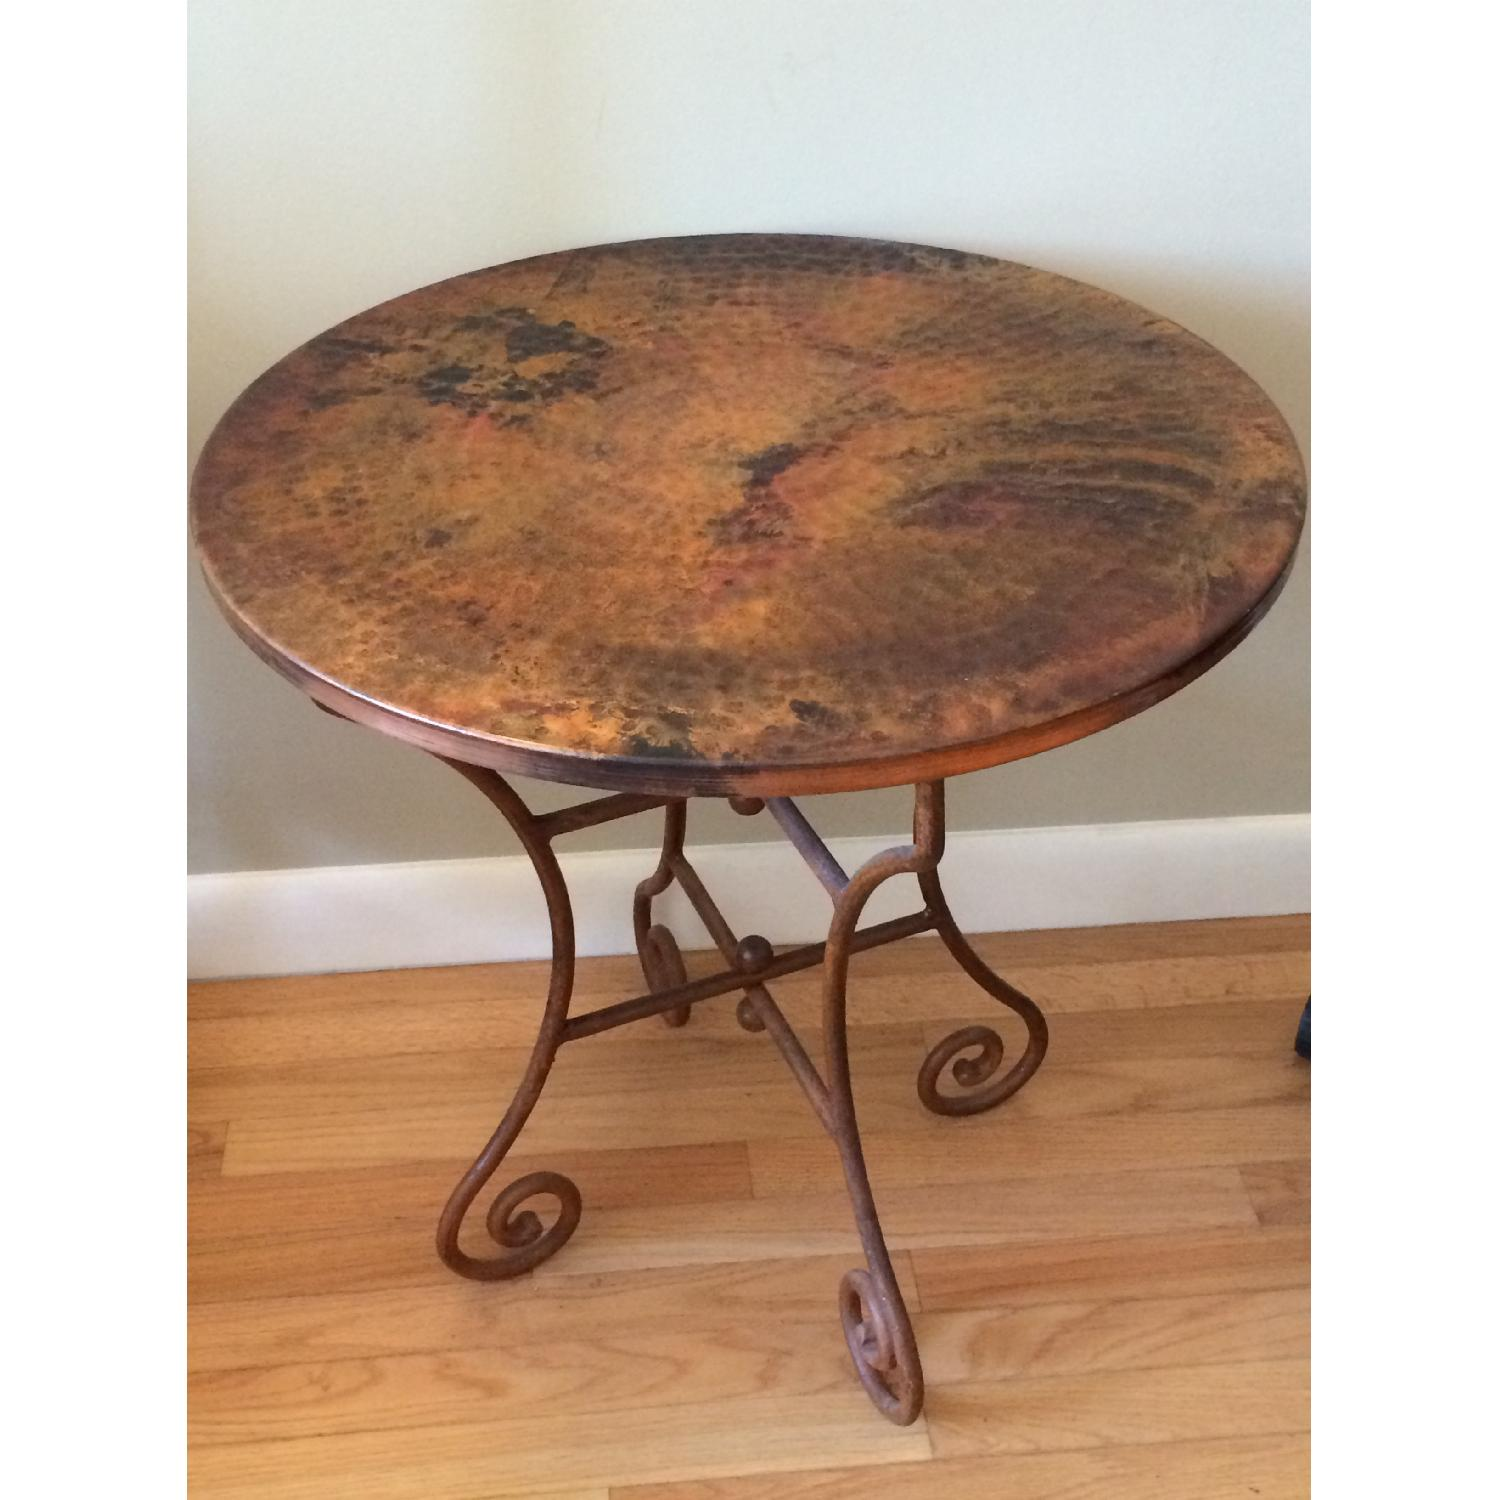 Hammered Copper Top End Tables - image-1